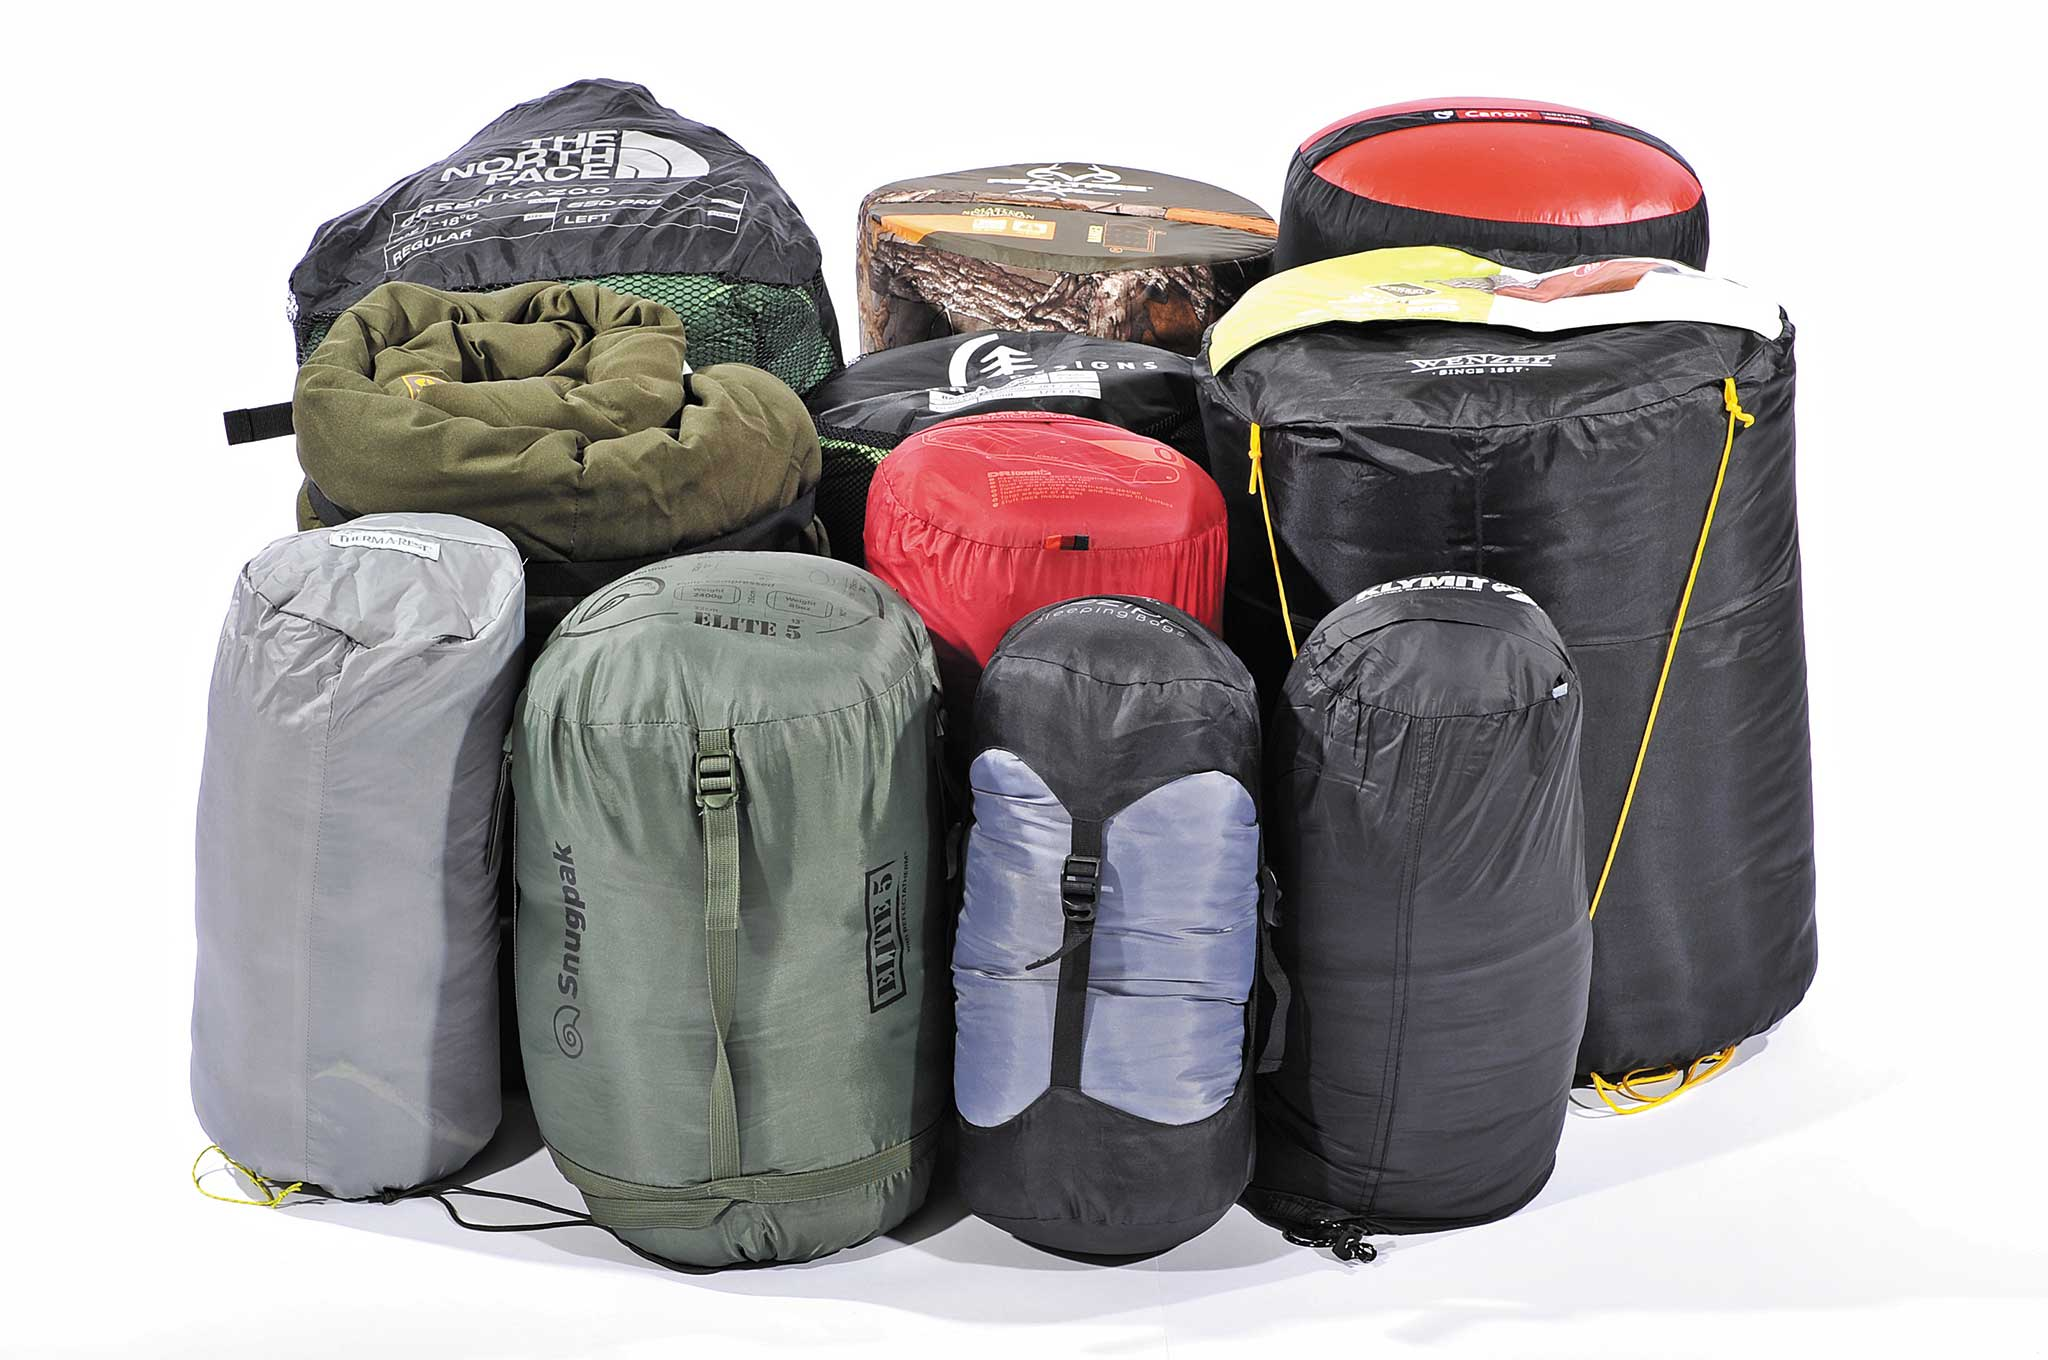 Winter Sleeping Bags Cold Weather Cos Recoil Offgrid